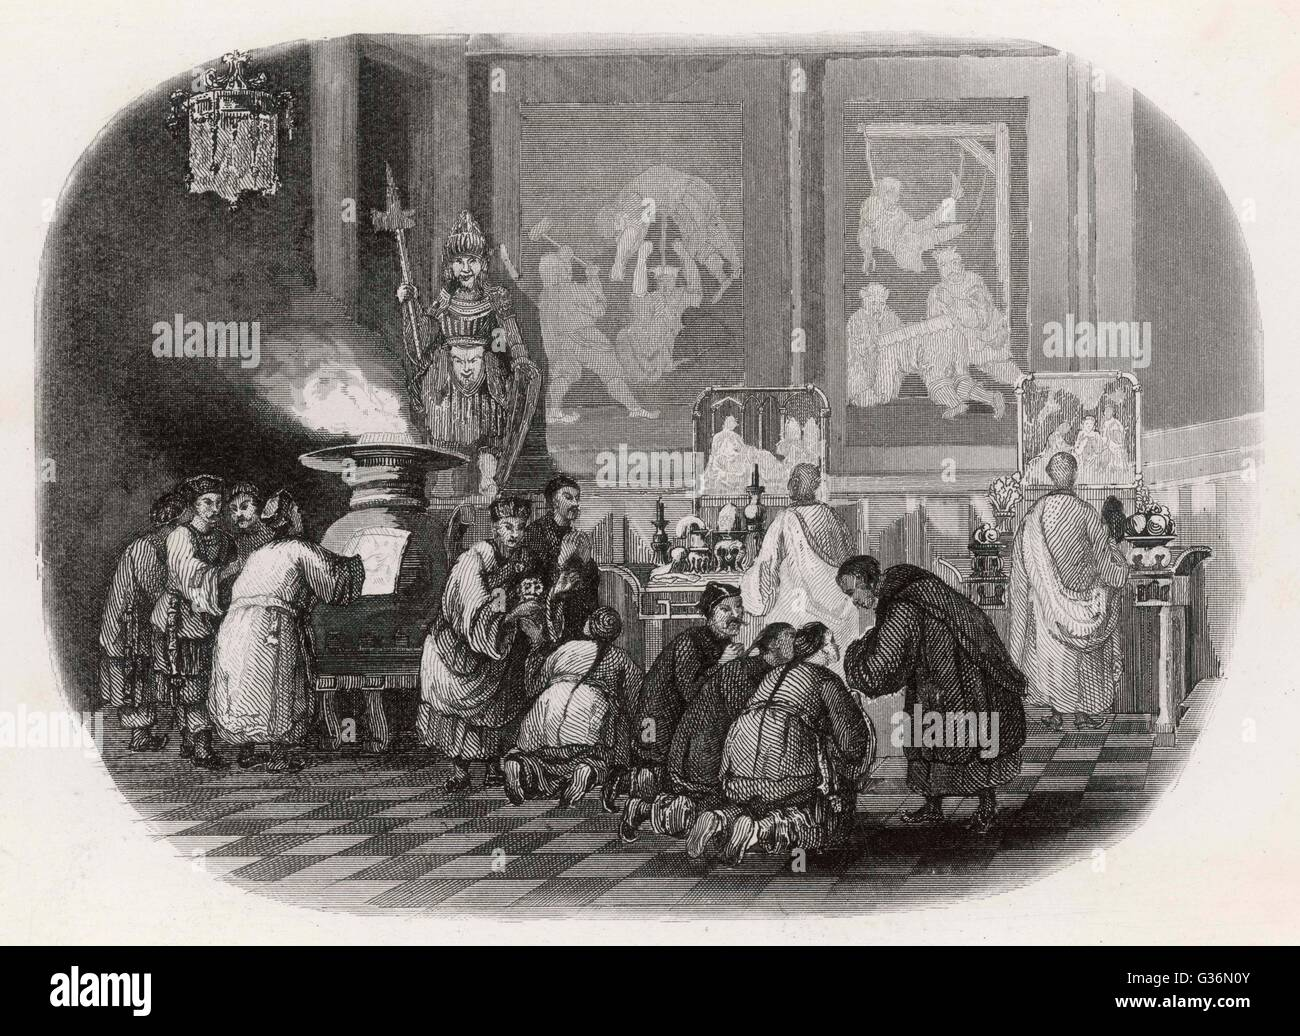 Cult of ancestors          Date: 1846 - Stock Image